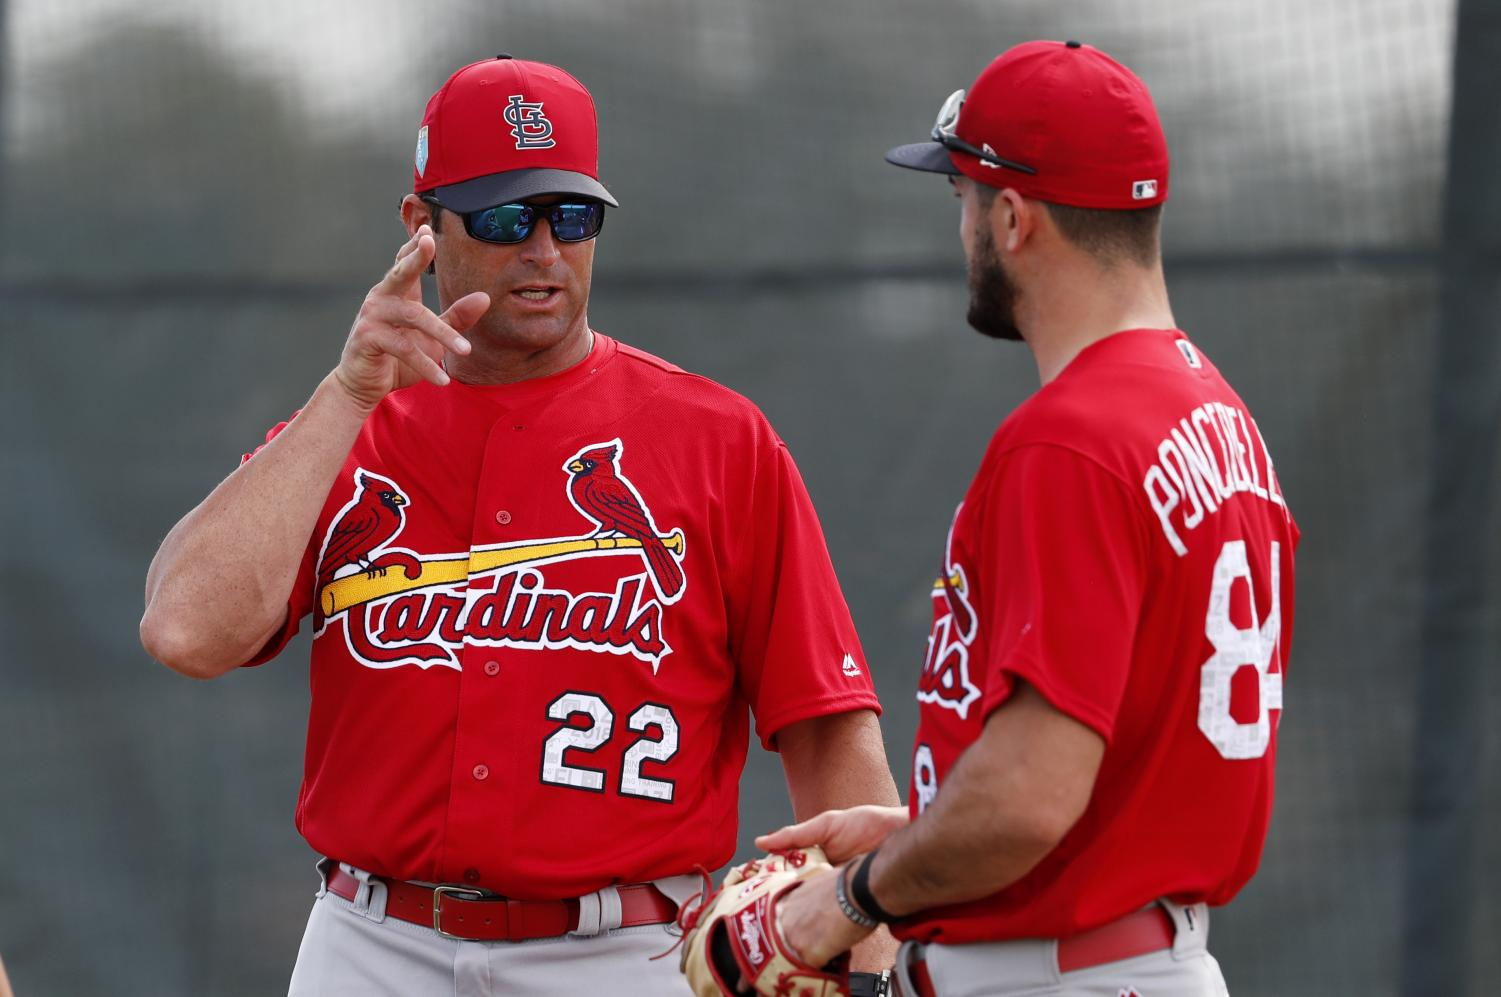 Mike Matheny, Royals manager, talks about pitching with Daniel Ponce de Leon, pitcher, during his time with the St. Louis Cardinals. Matheny was hired as the 20th manager in Royals history.